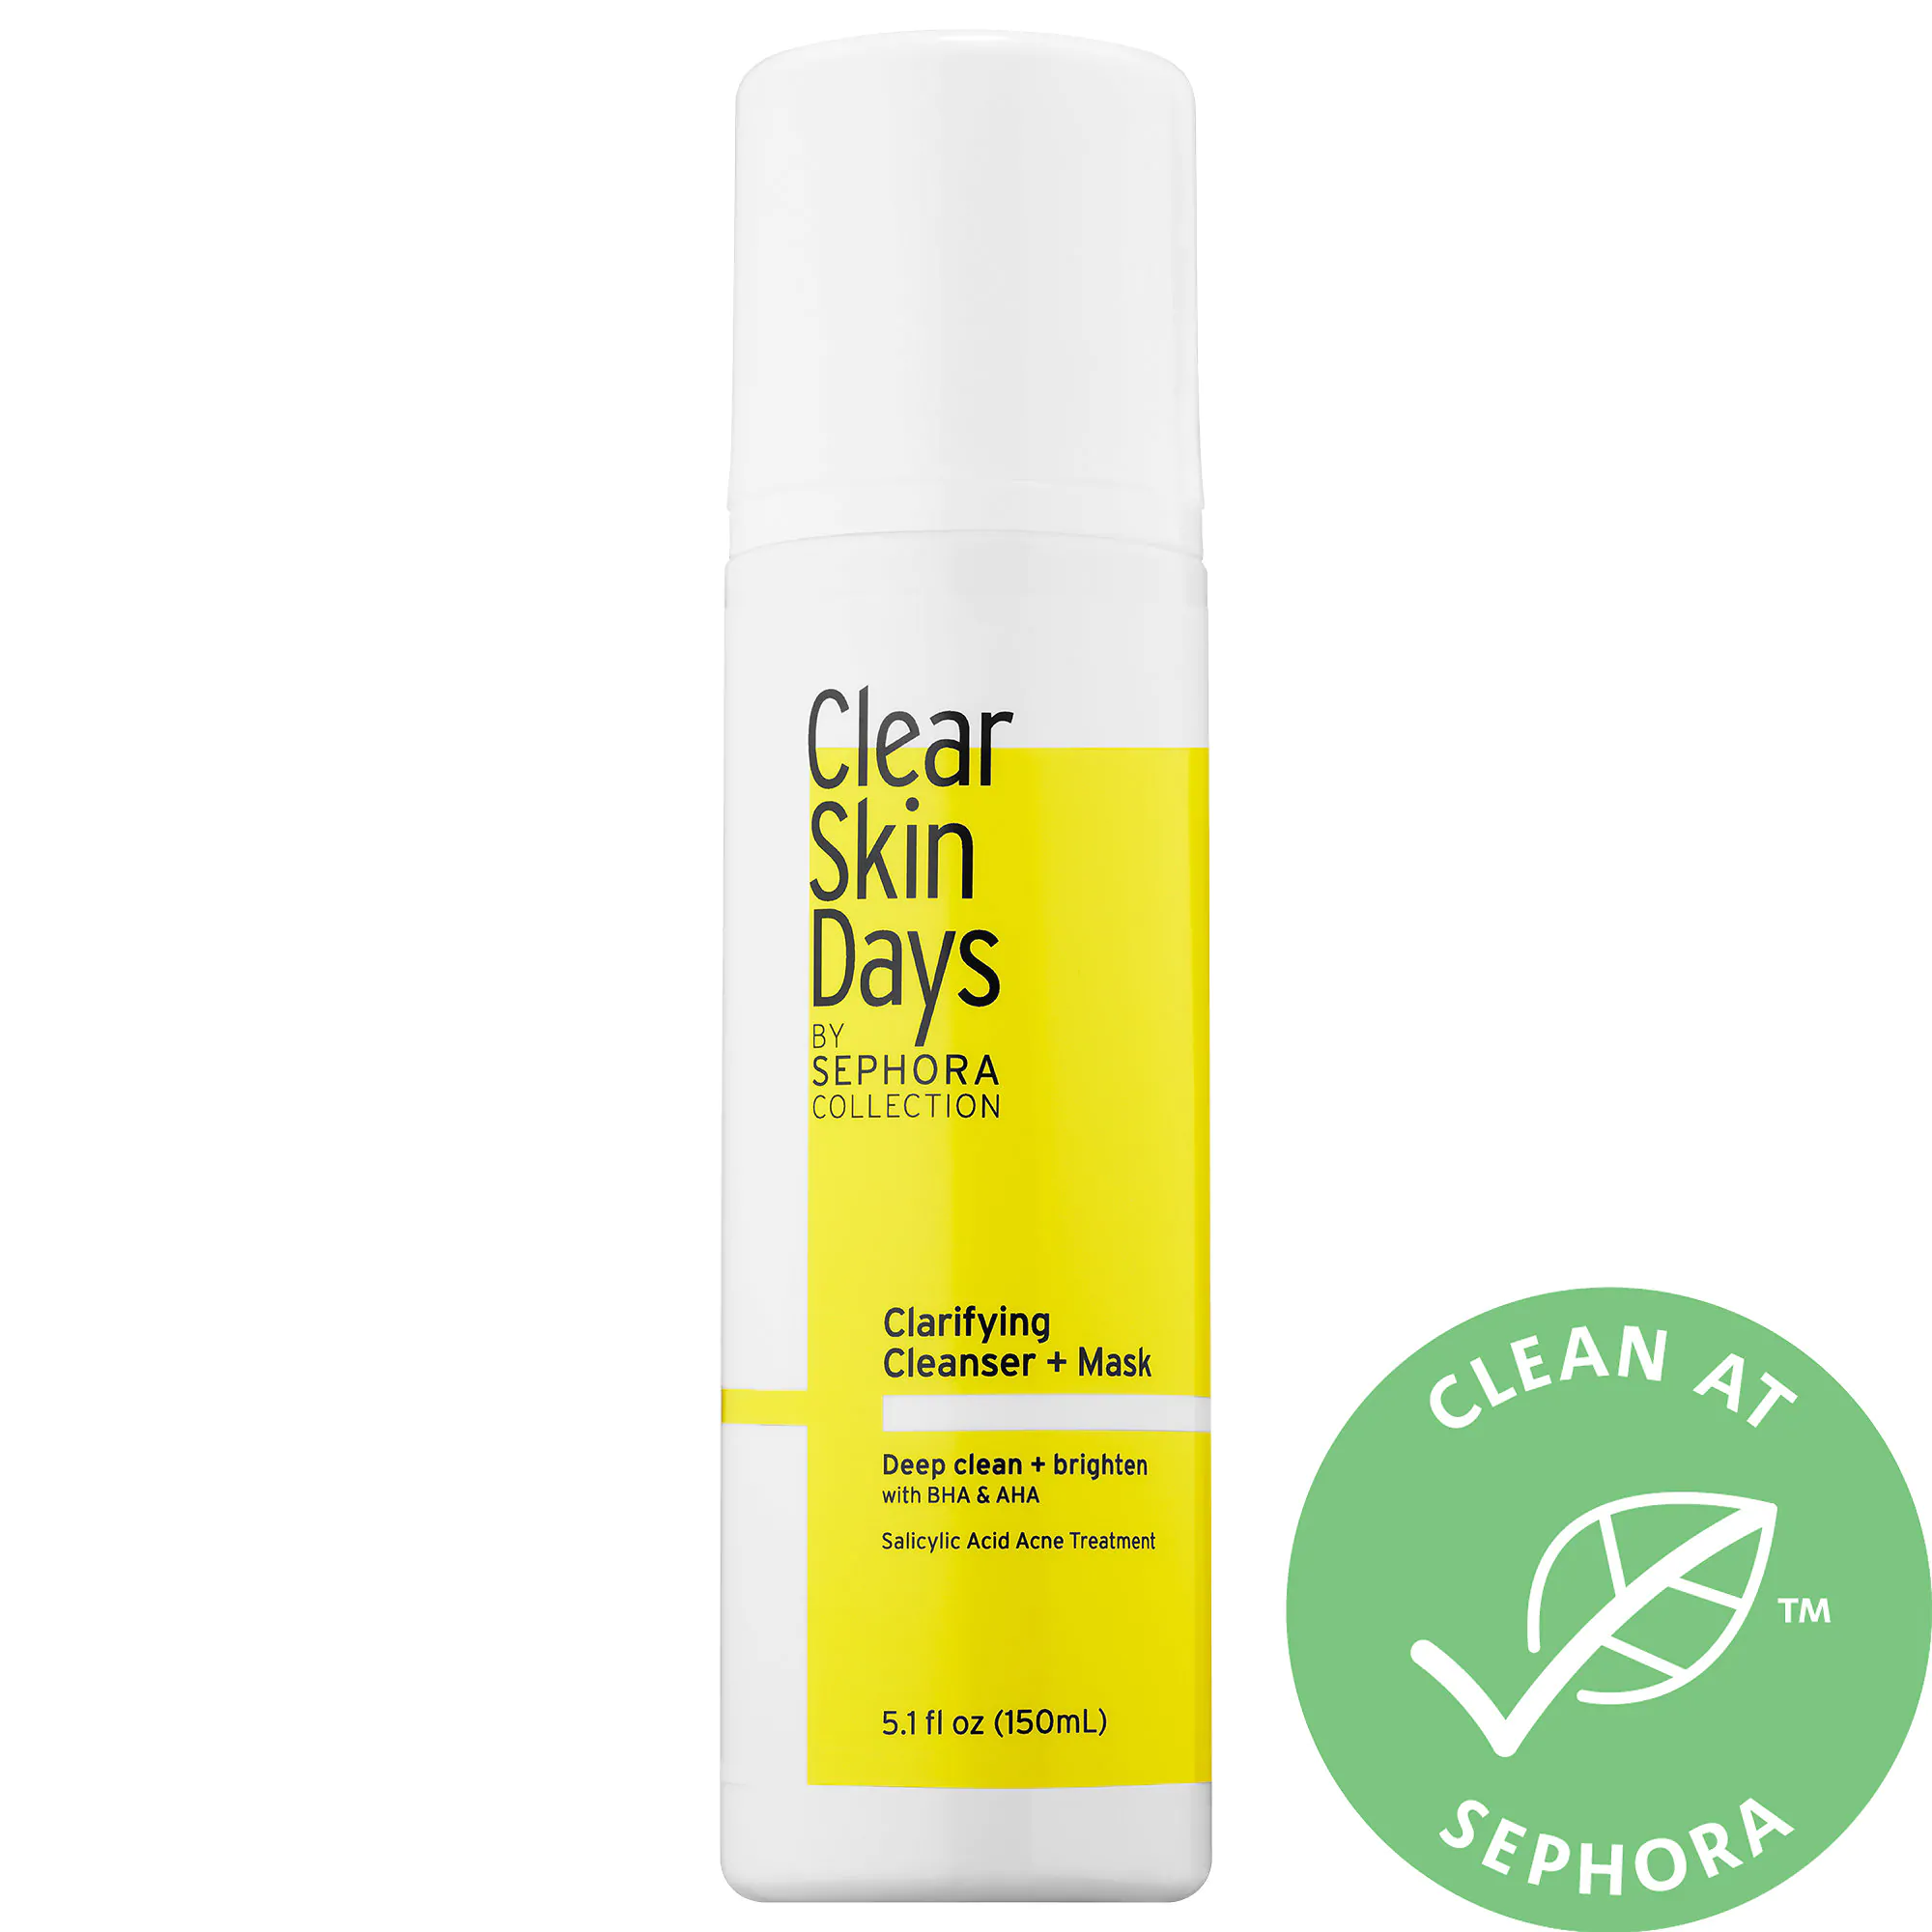 SEPHORA COLLECTION Clear Skin Days By Sephora Collection Clarifying Cleanser + Mask